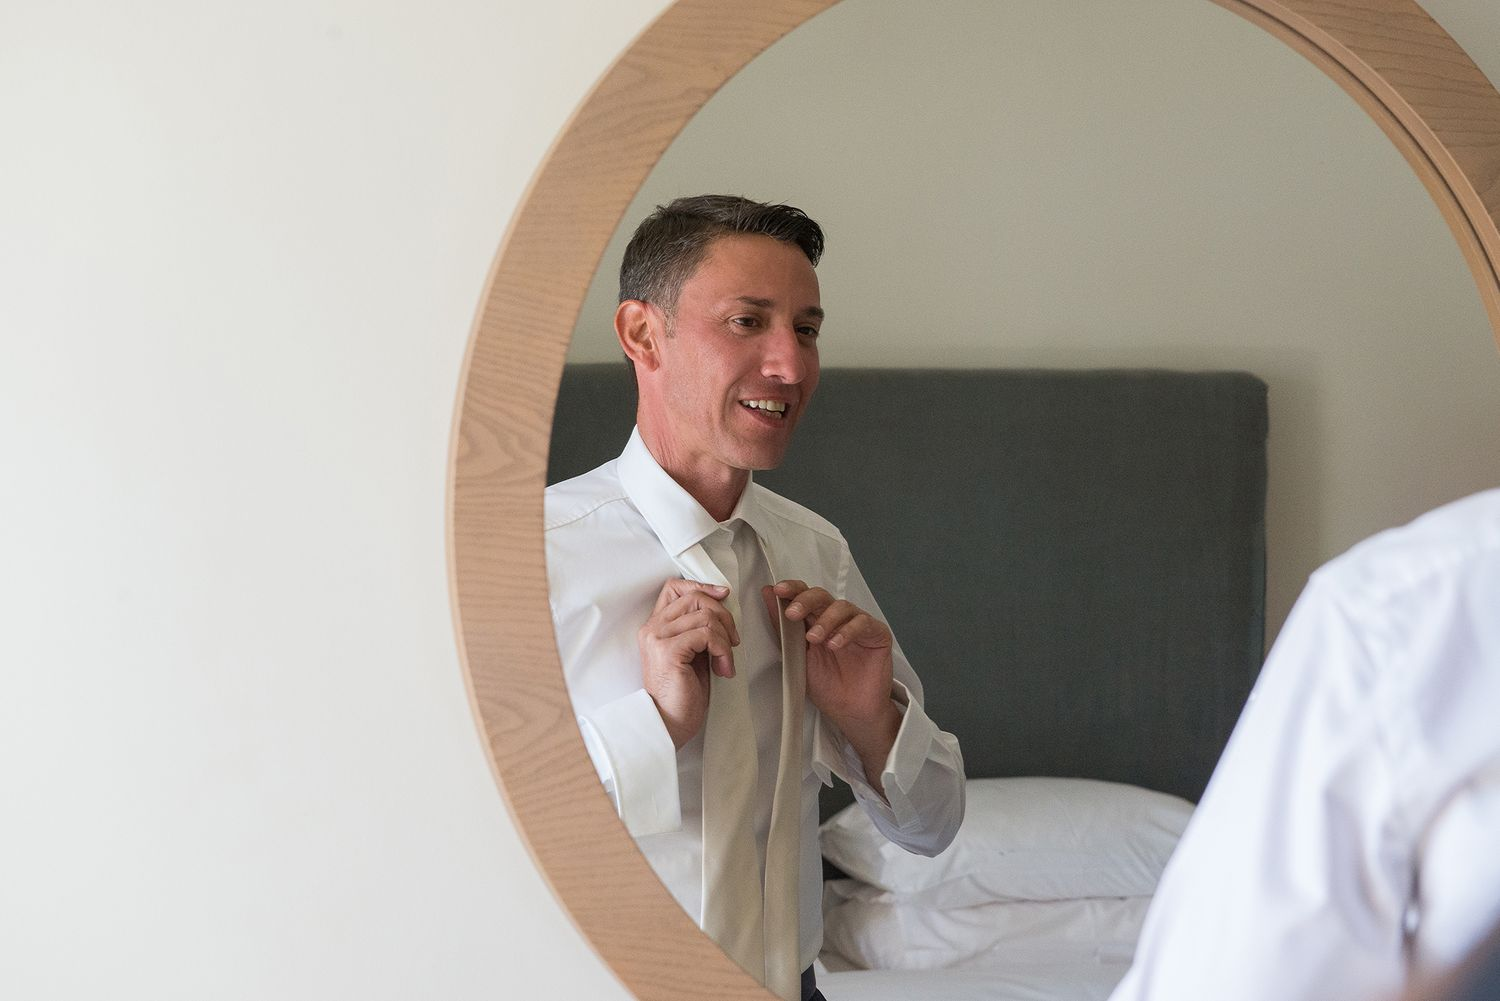 groom fixes his tie in front of the mirror at his preparation before the wedding